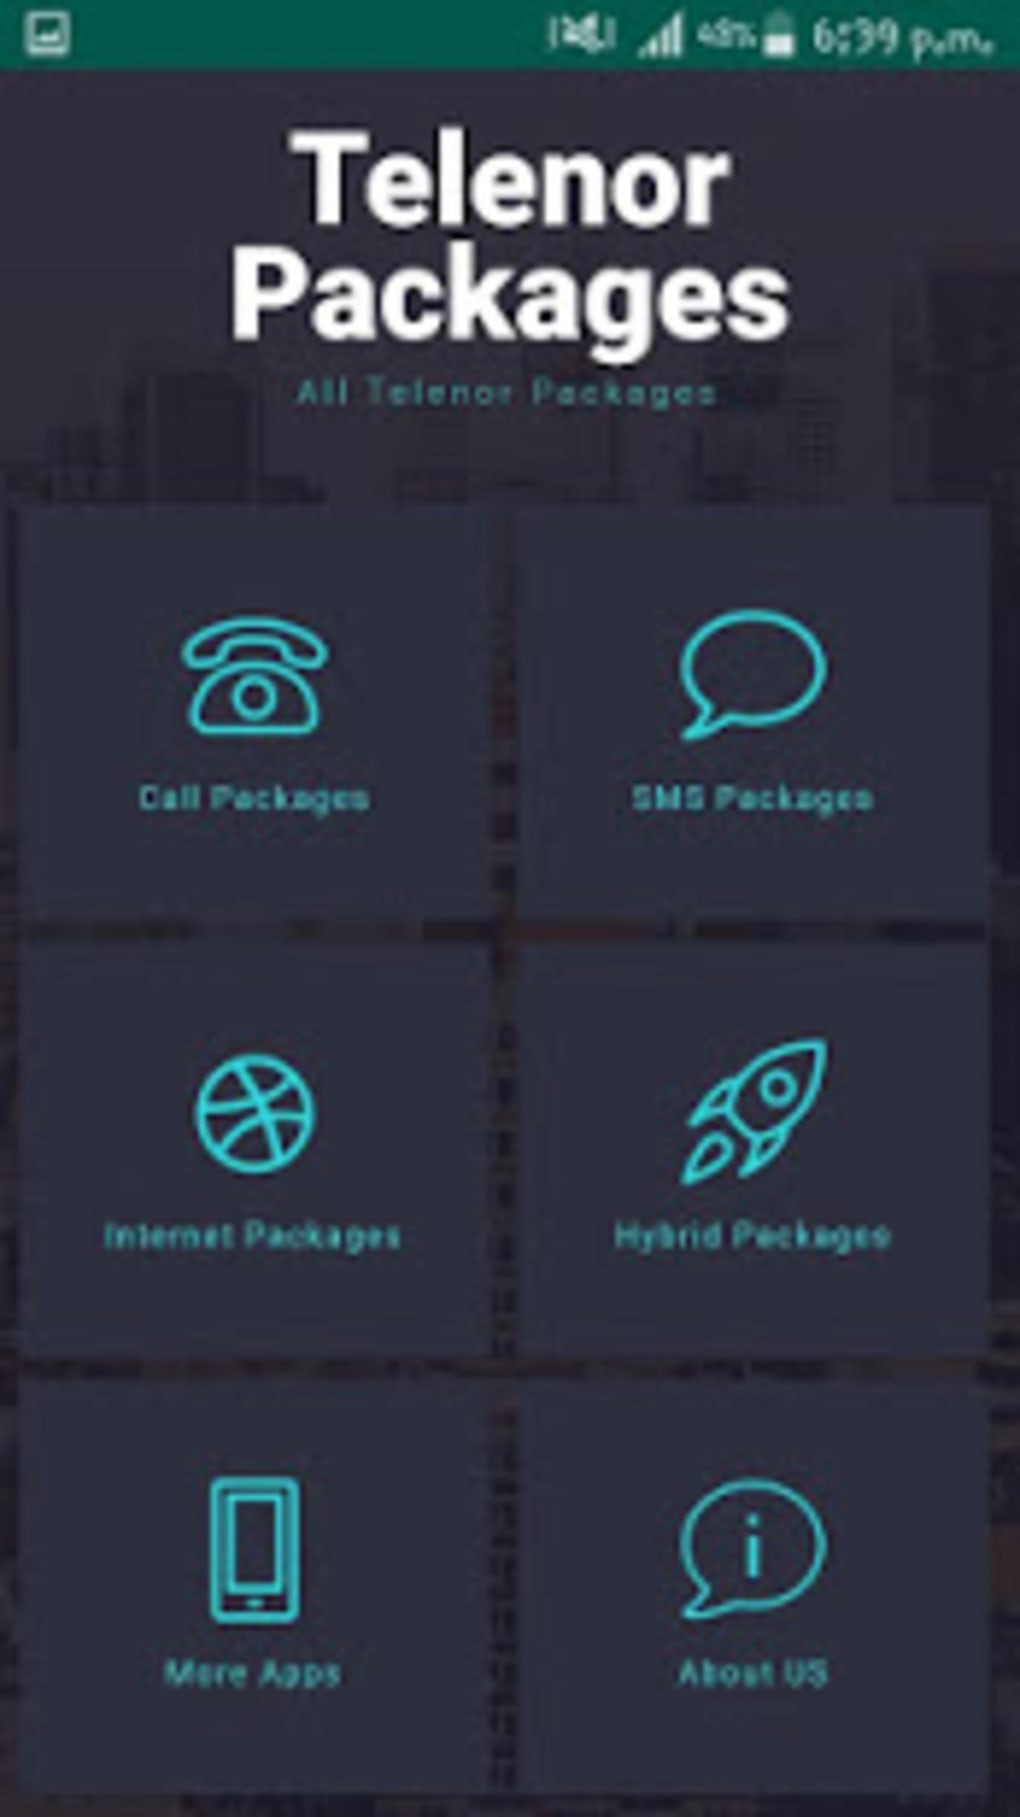 Telenor Packages: Call SMS Internet Packages for Android